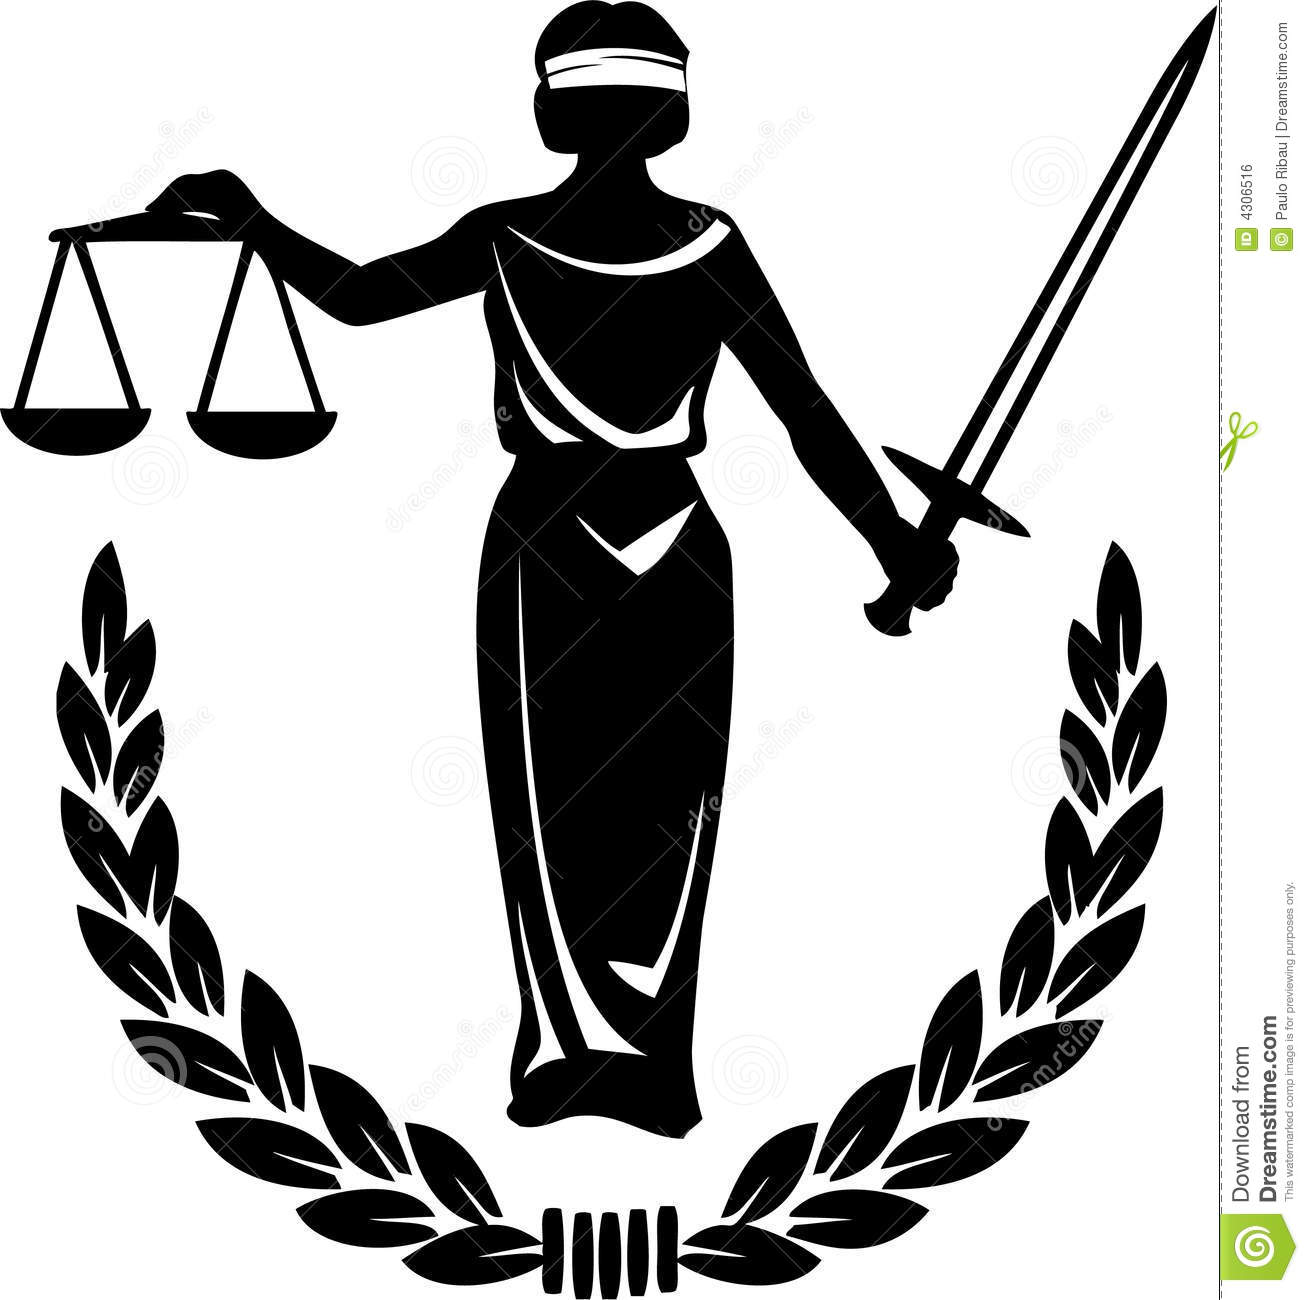 1309x1300 15 Justice Clipart Legal Issue For Free Download On Mbtskoudsalg